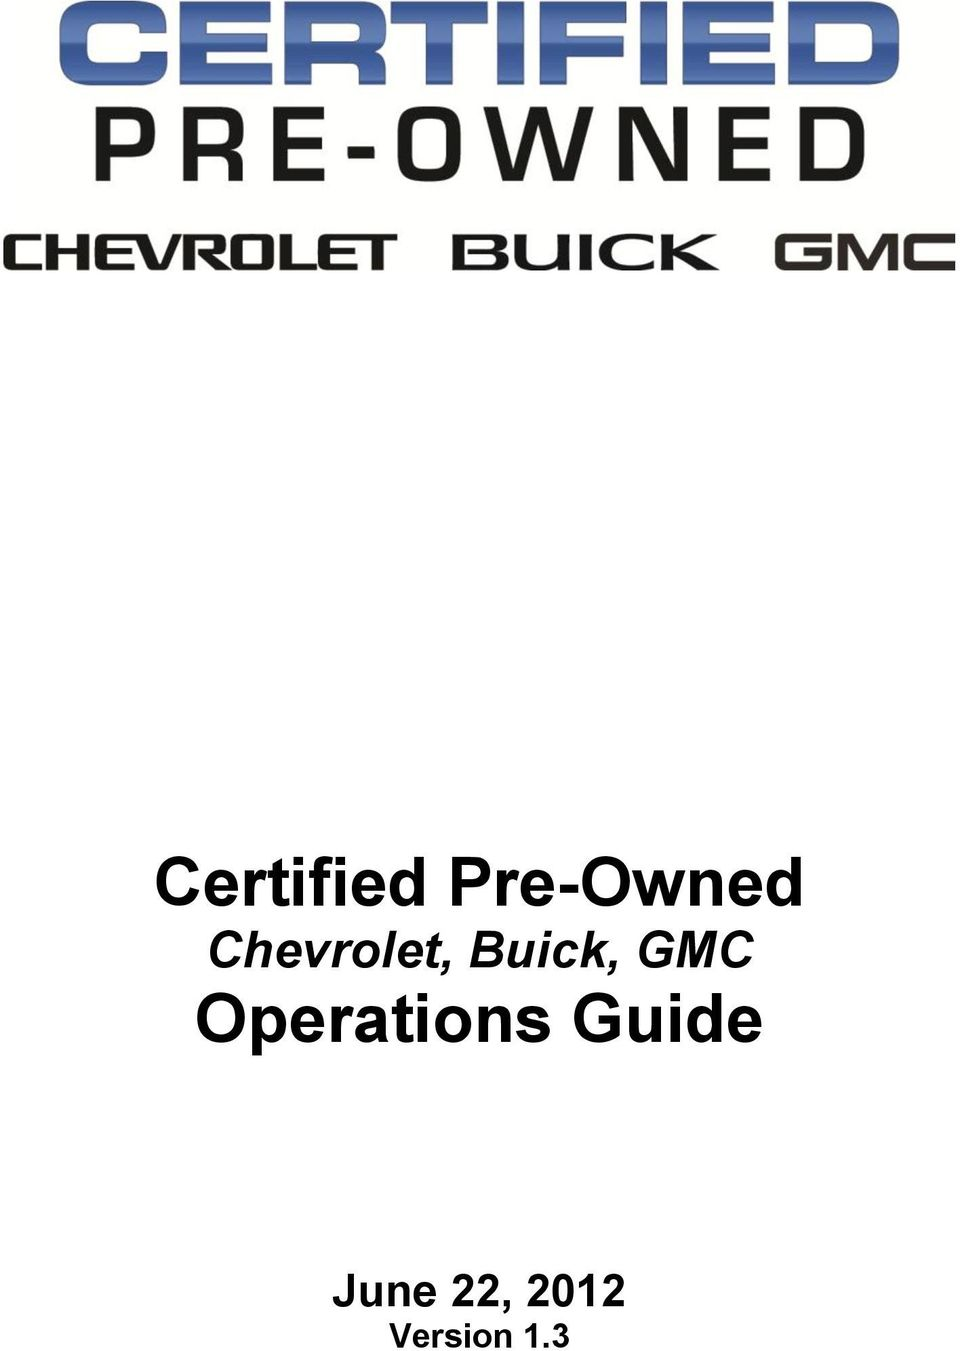 GMC Operations Guide